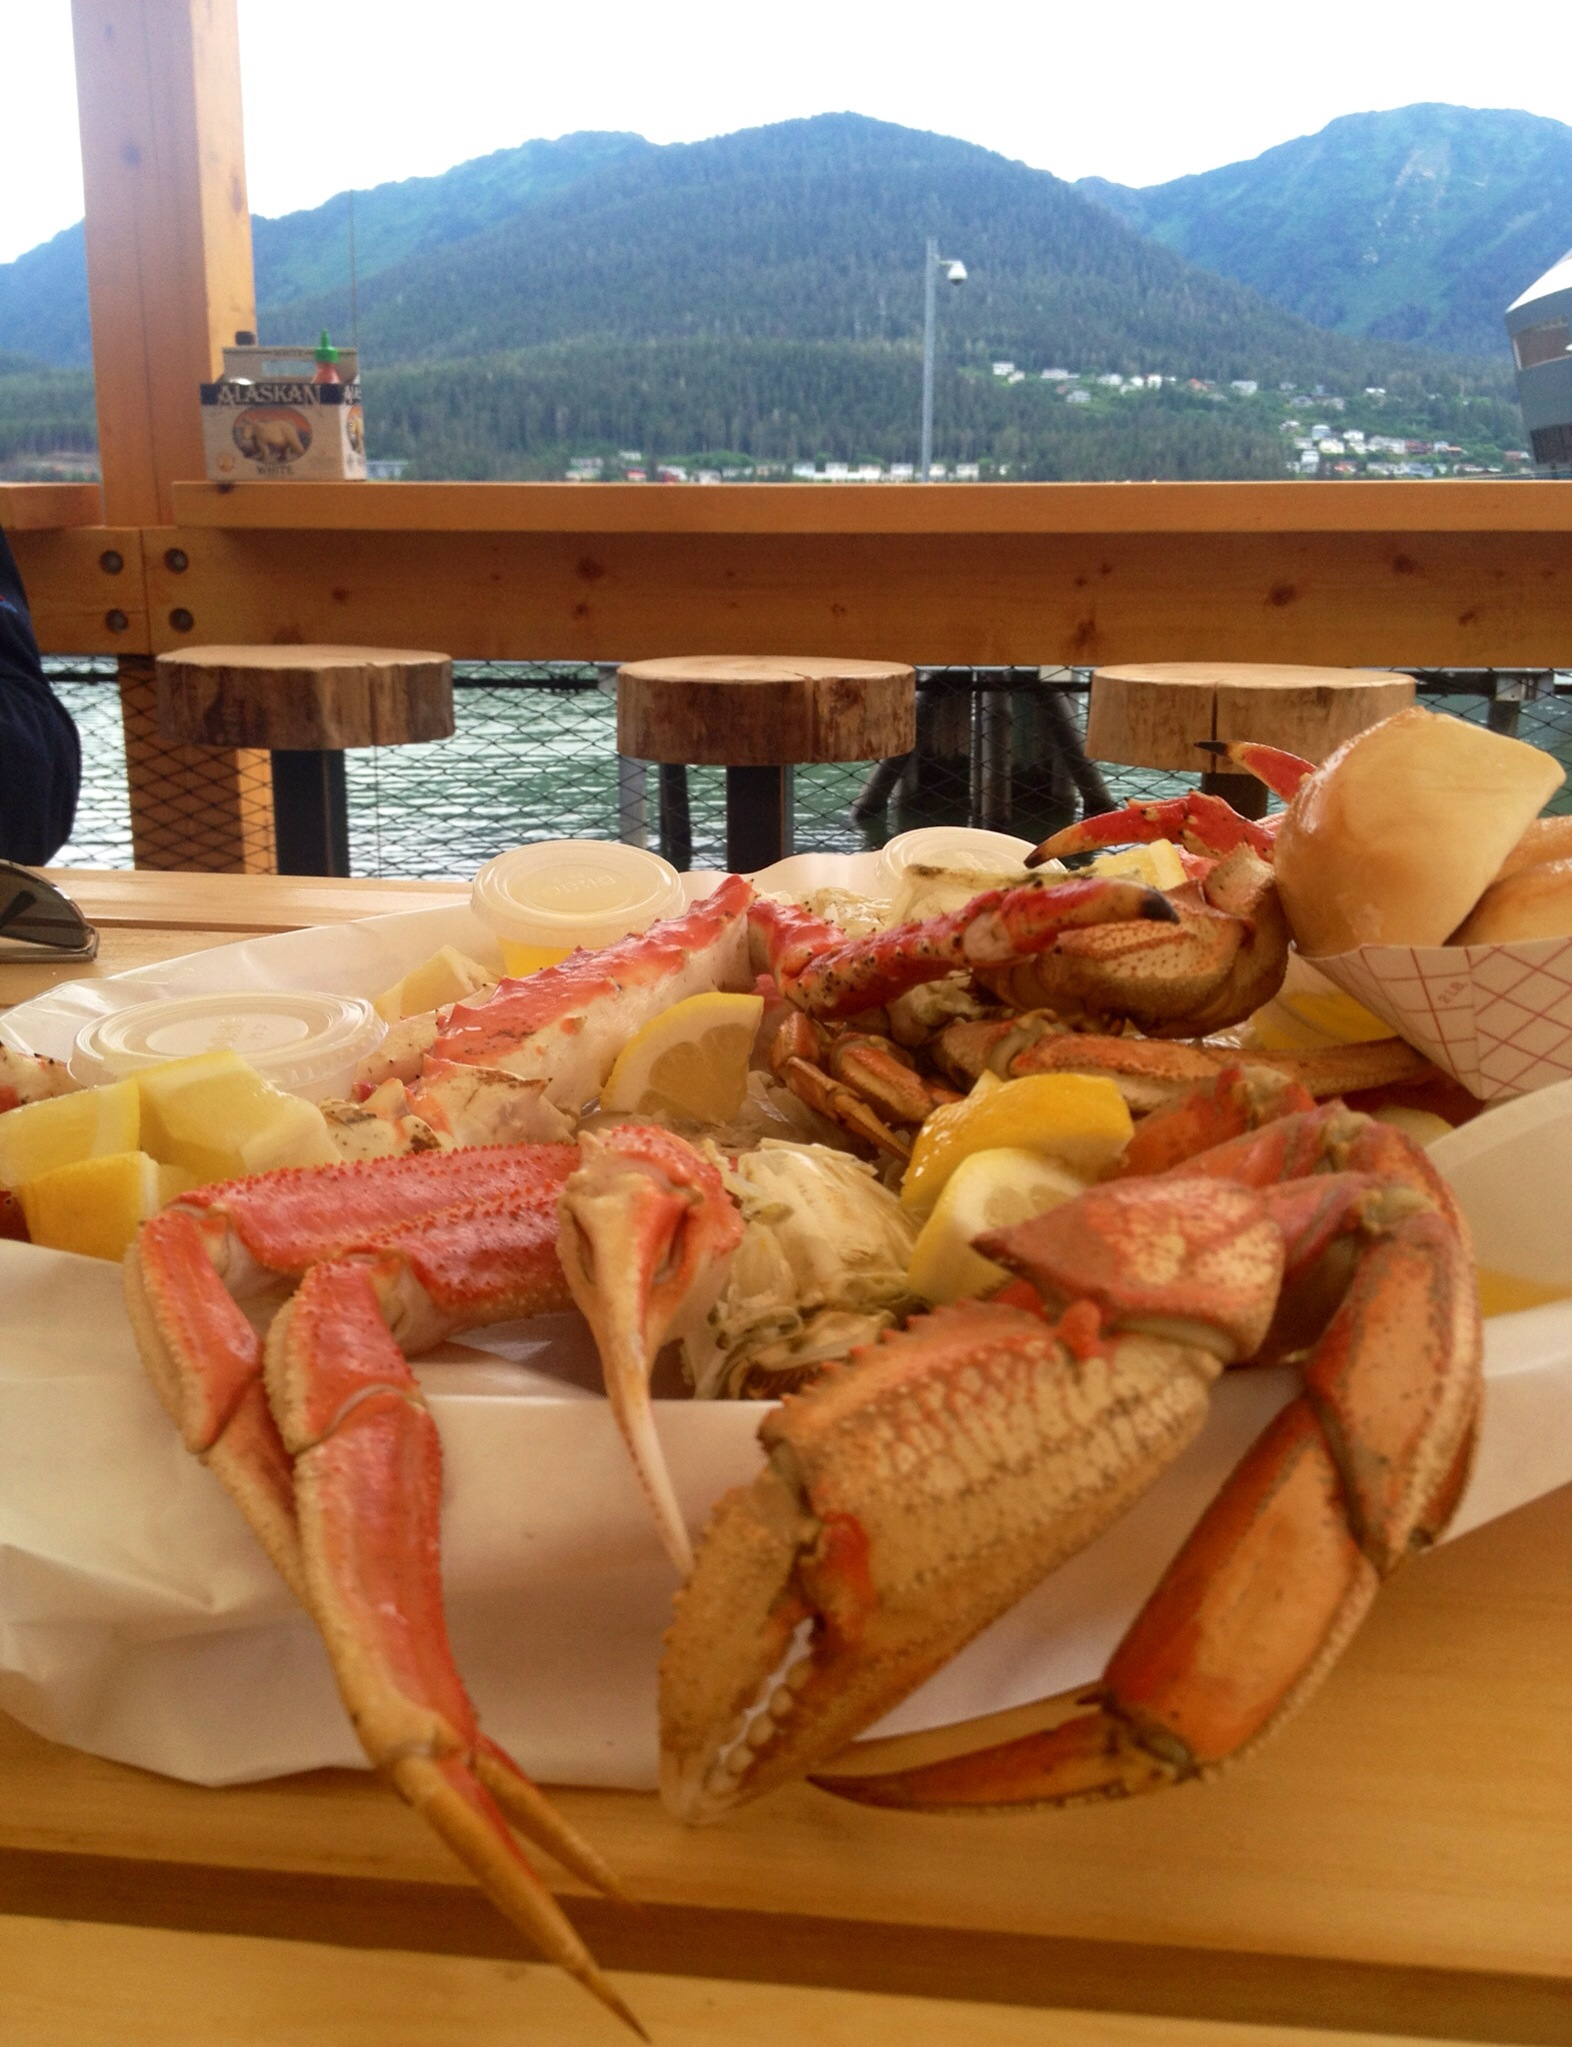 Dinner and a view... Tracy's King Crab Shack in Juneau is a don't miss experience. You will not find crab like this anywhere else. We even got to try fresh King Crab...